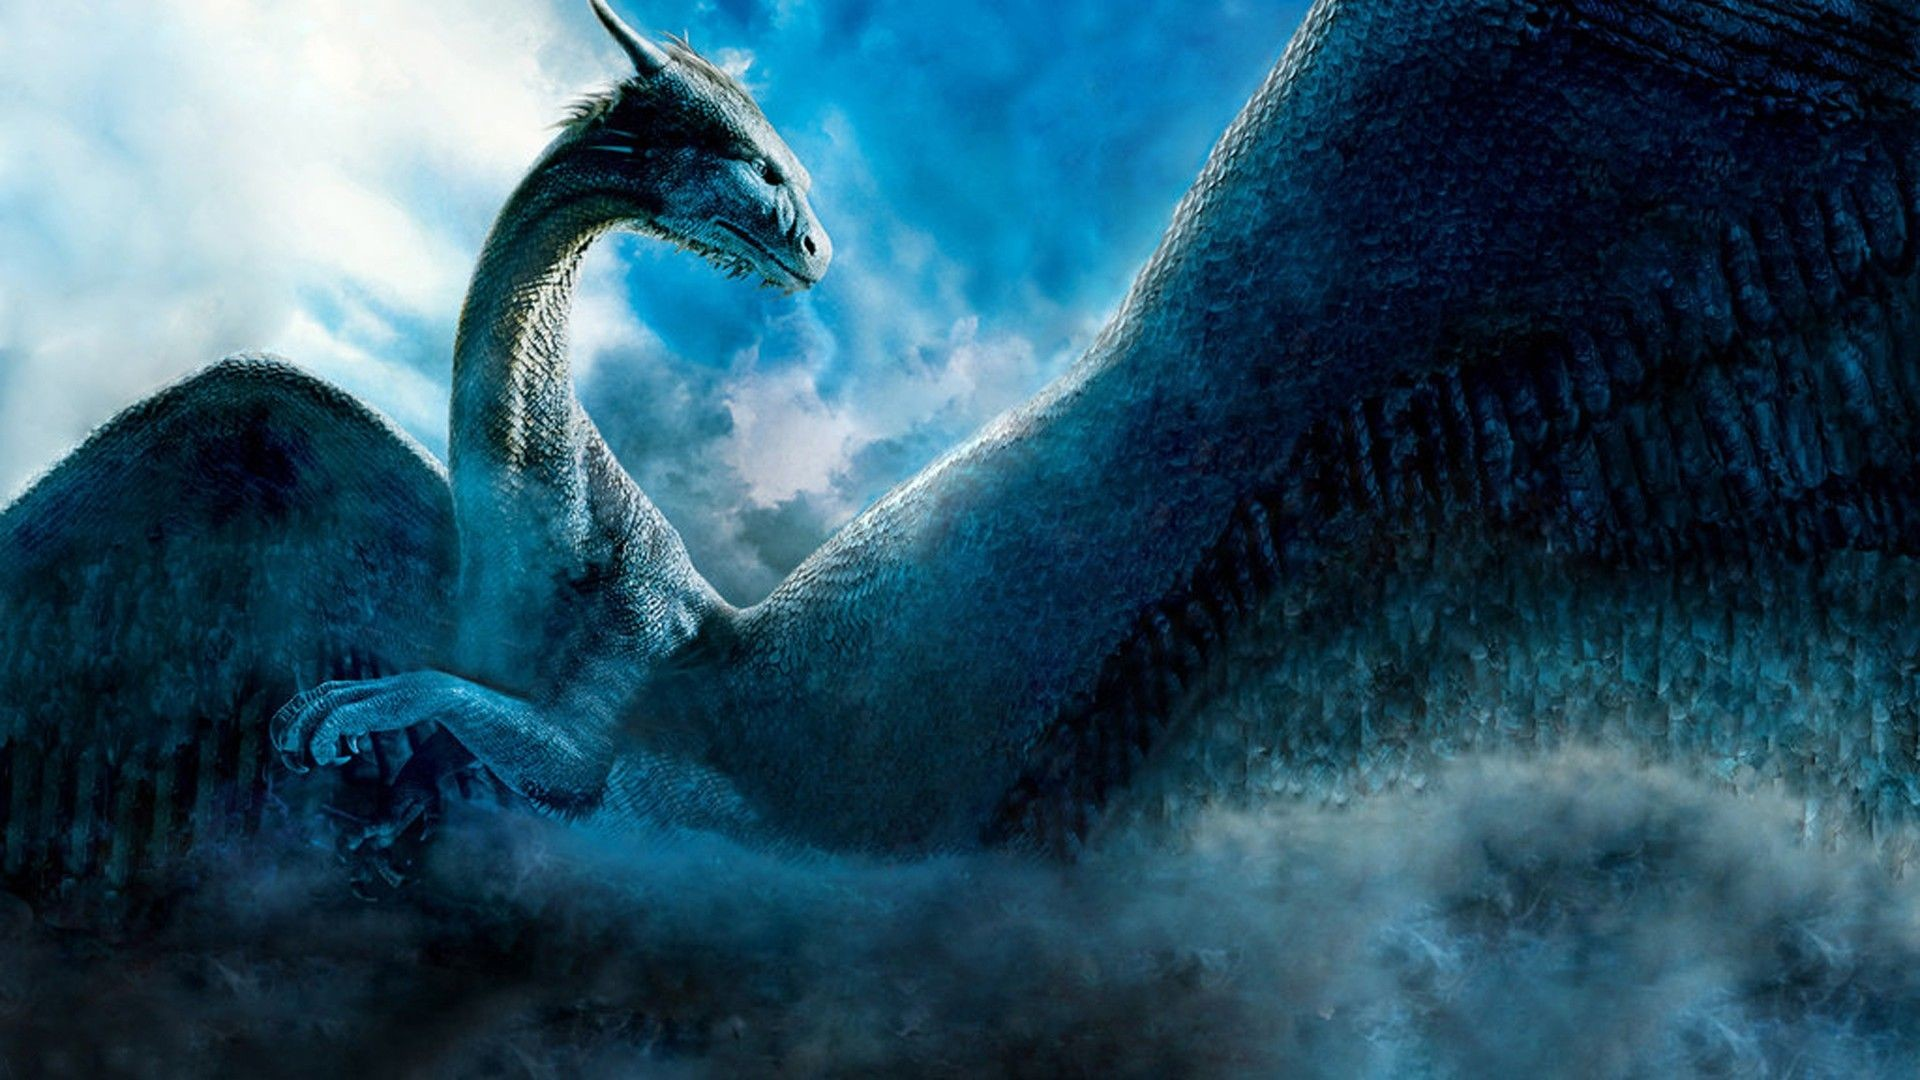 1920x1080 0 3D Dragon Wallpapers Blue Dragon HD Wallpapers WallpapersCharlie